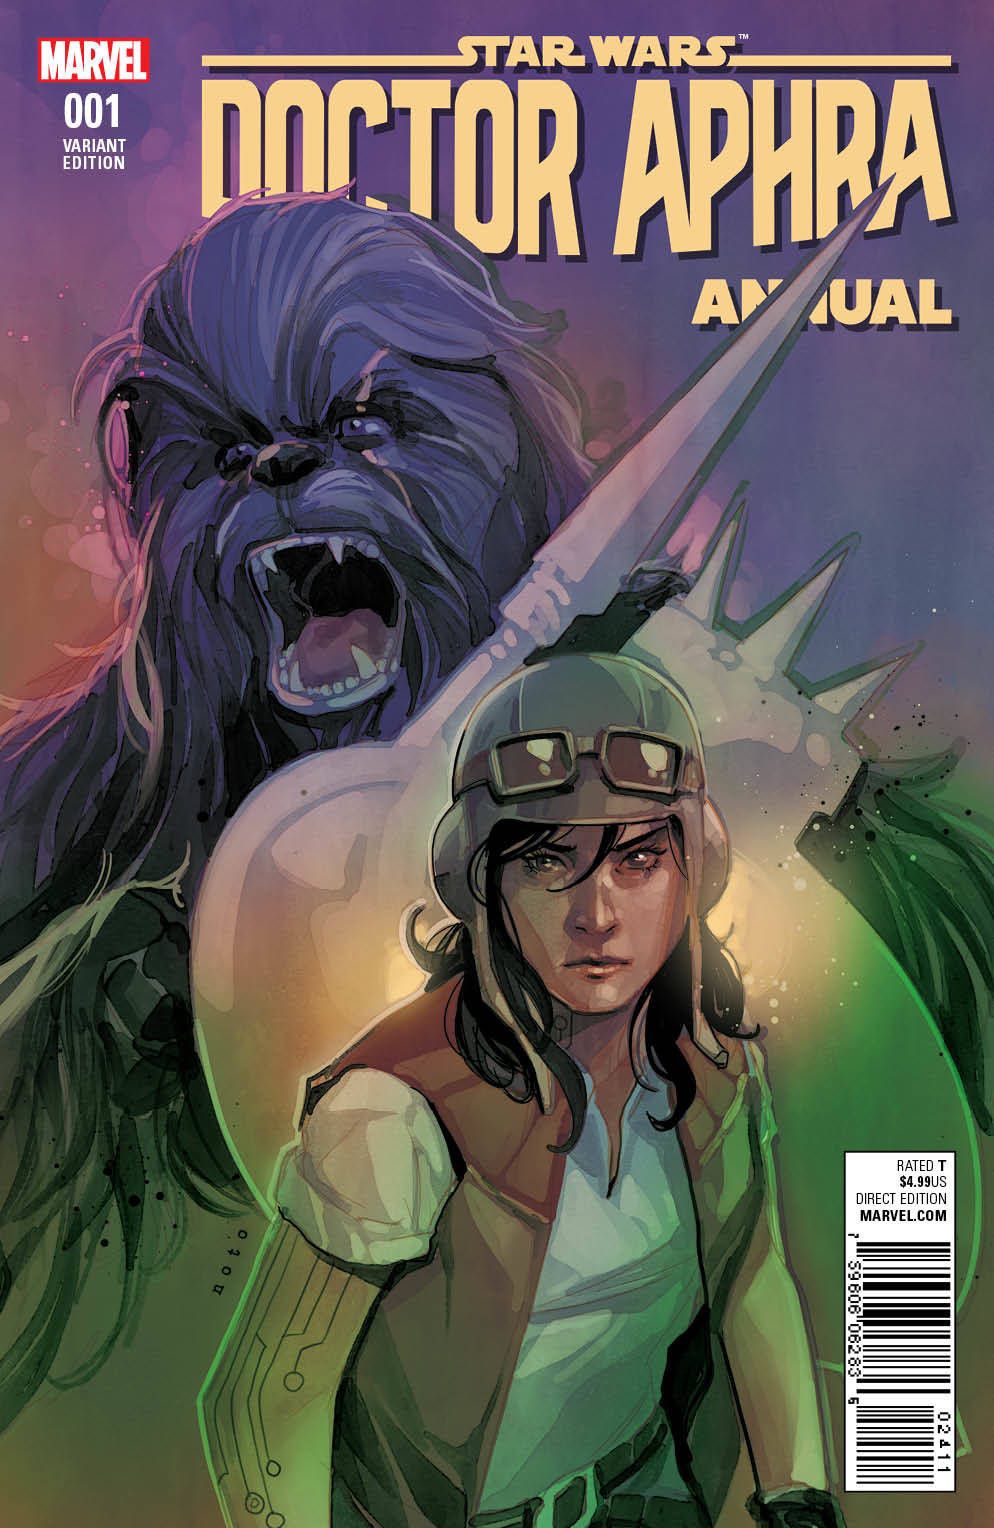 STAR WARS DOCTOR APHRA ANNUAL 1 NOTO VAR.jpg